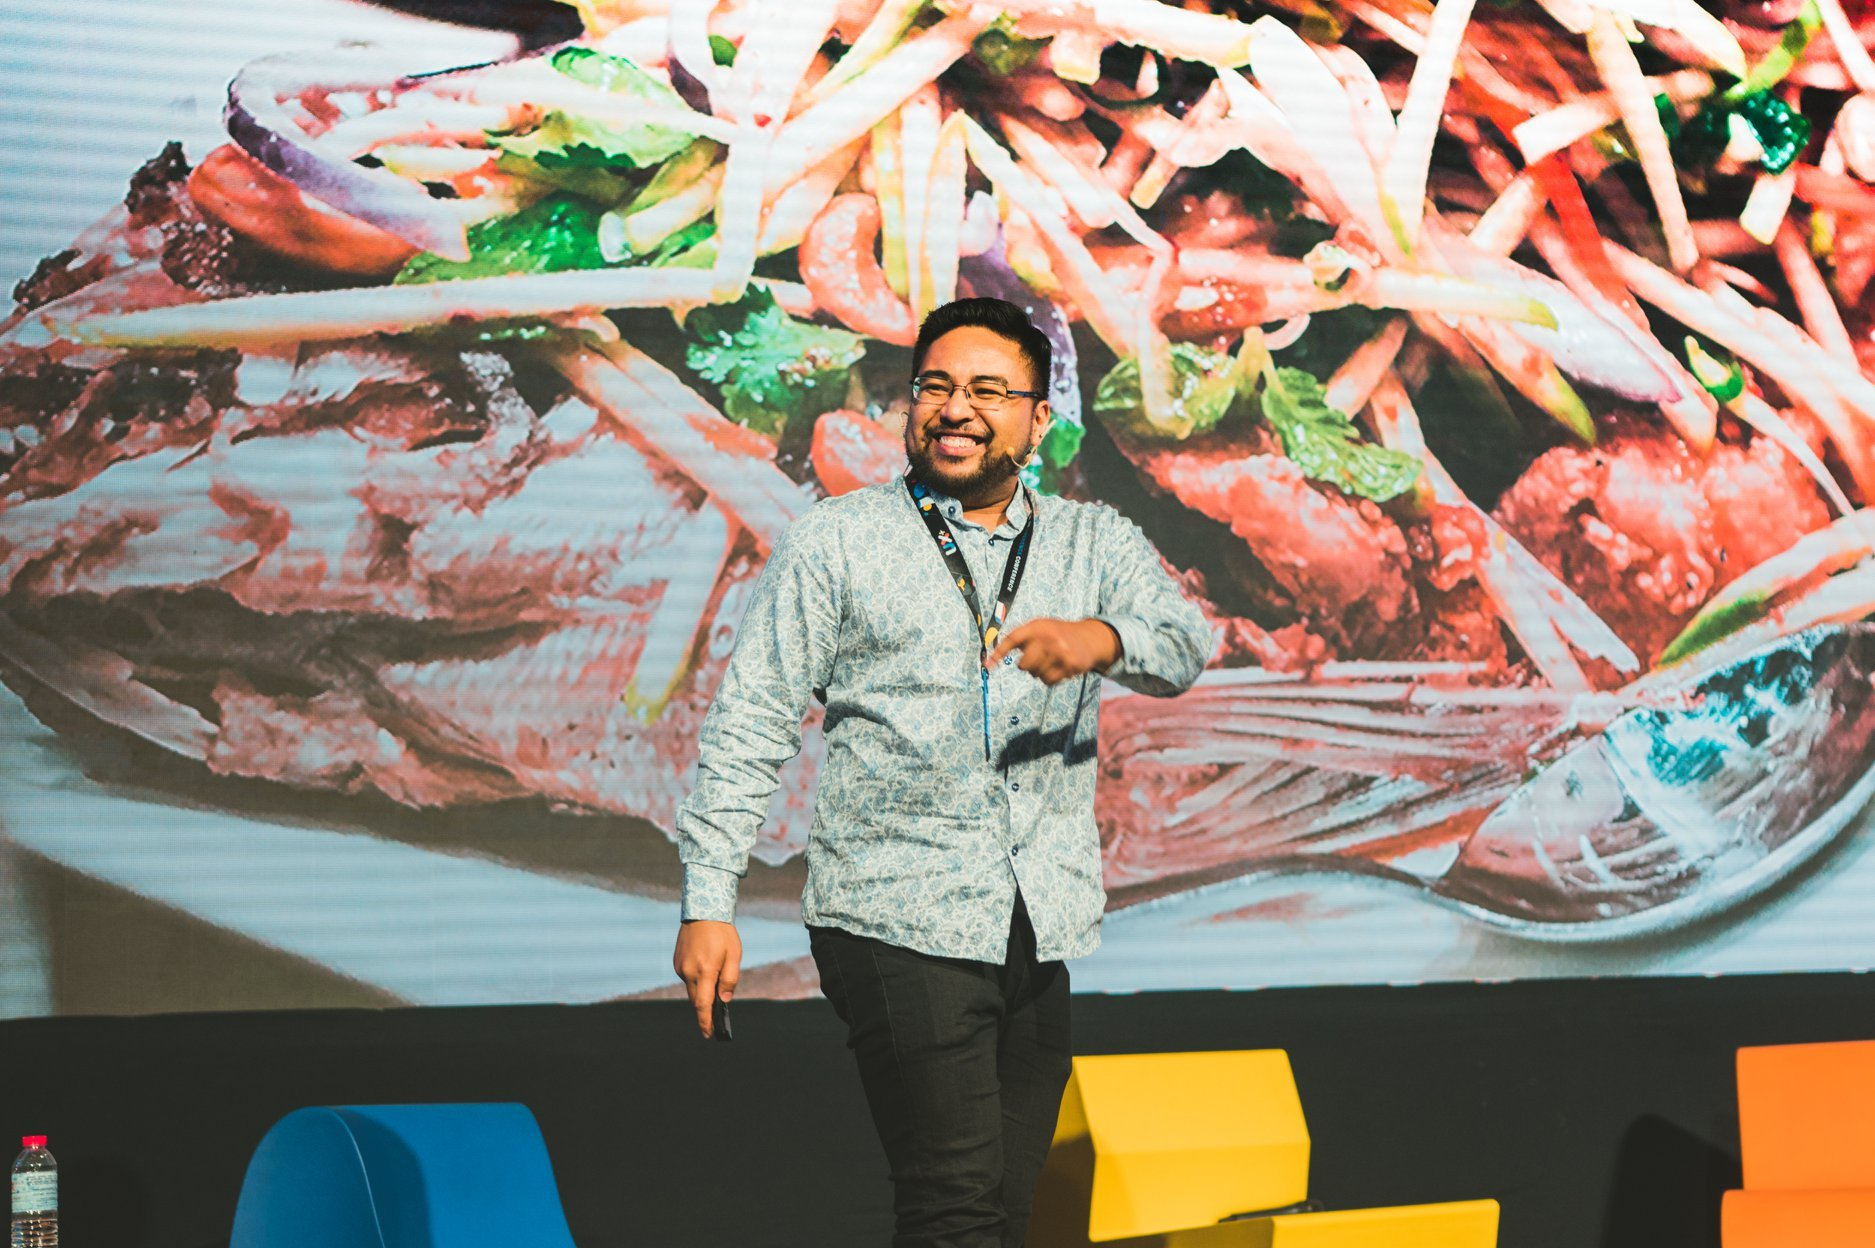 User Experience Conference UX 2019 - Jay Demetillo - Redesigning GrabFood